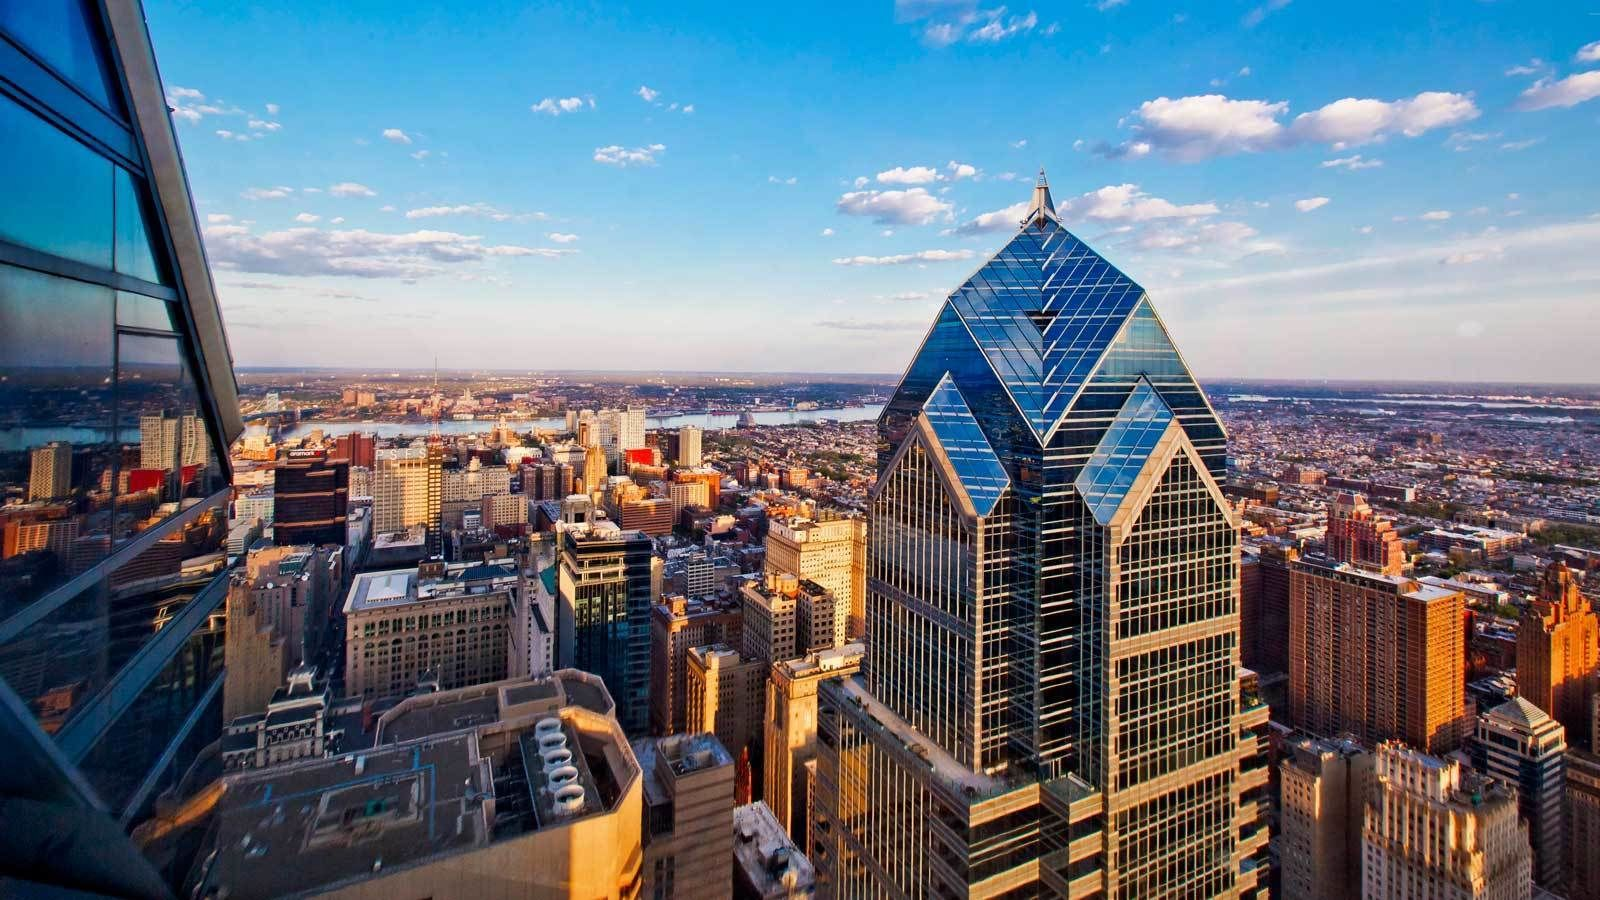 view of the skyscrapers from the observation deck in Philadelphia